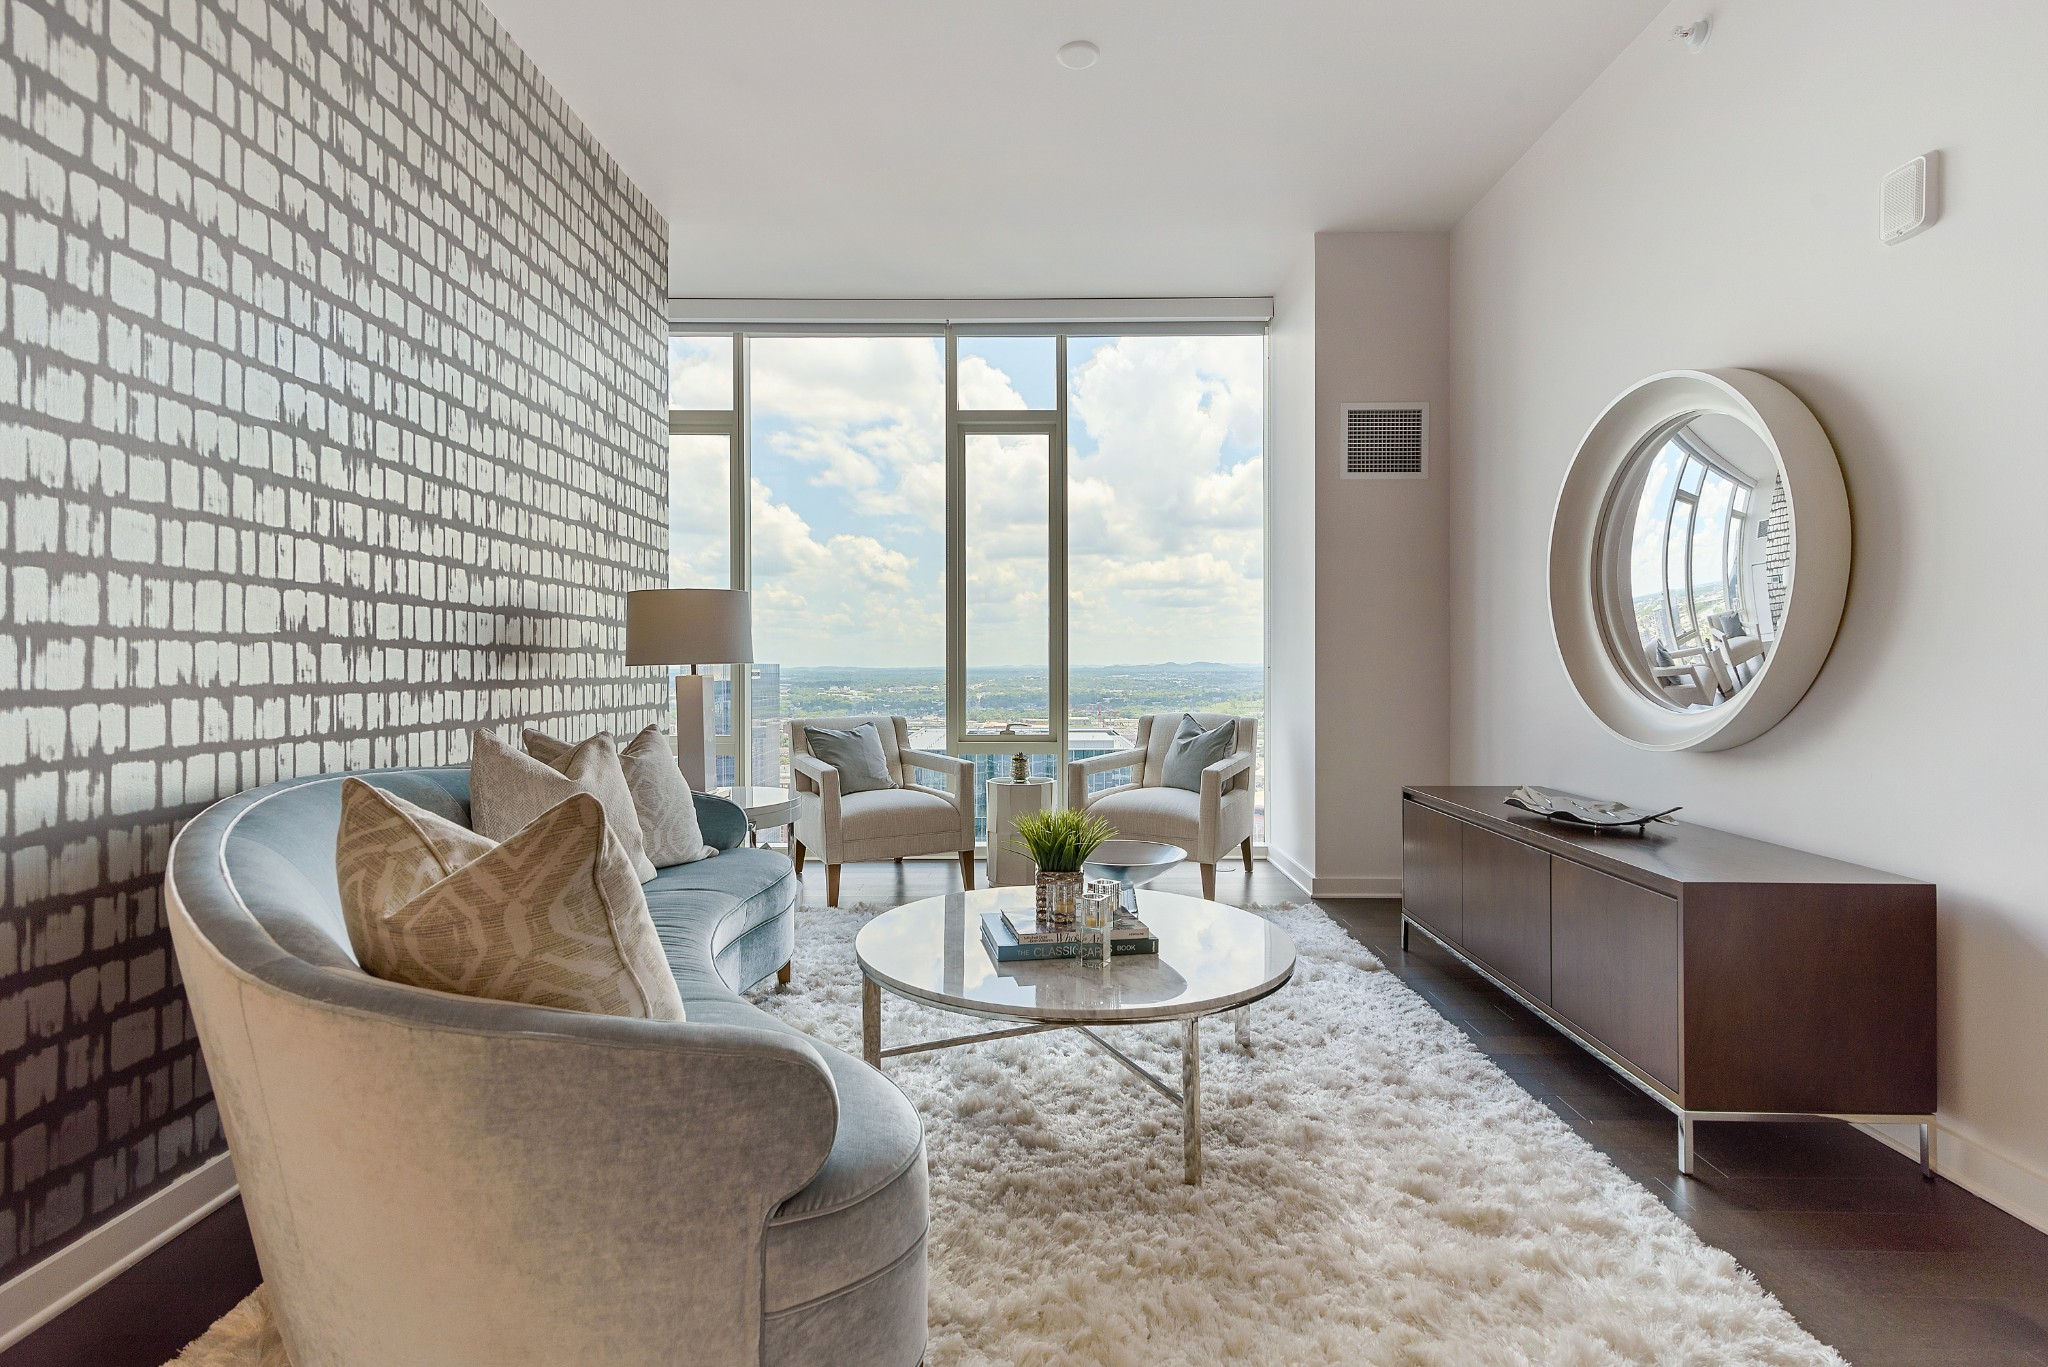 Luxury living beyond compare in Nashville's extraordinary 505 high-rise. Beautifully appointed 2-BR/